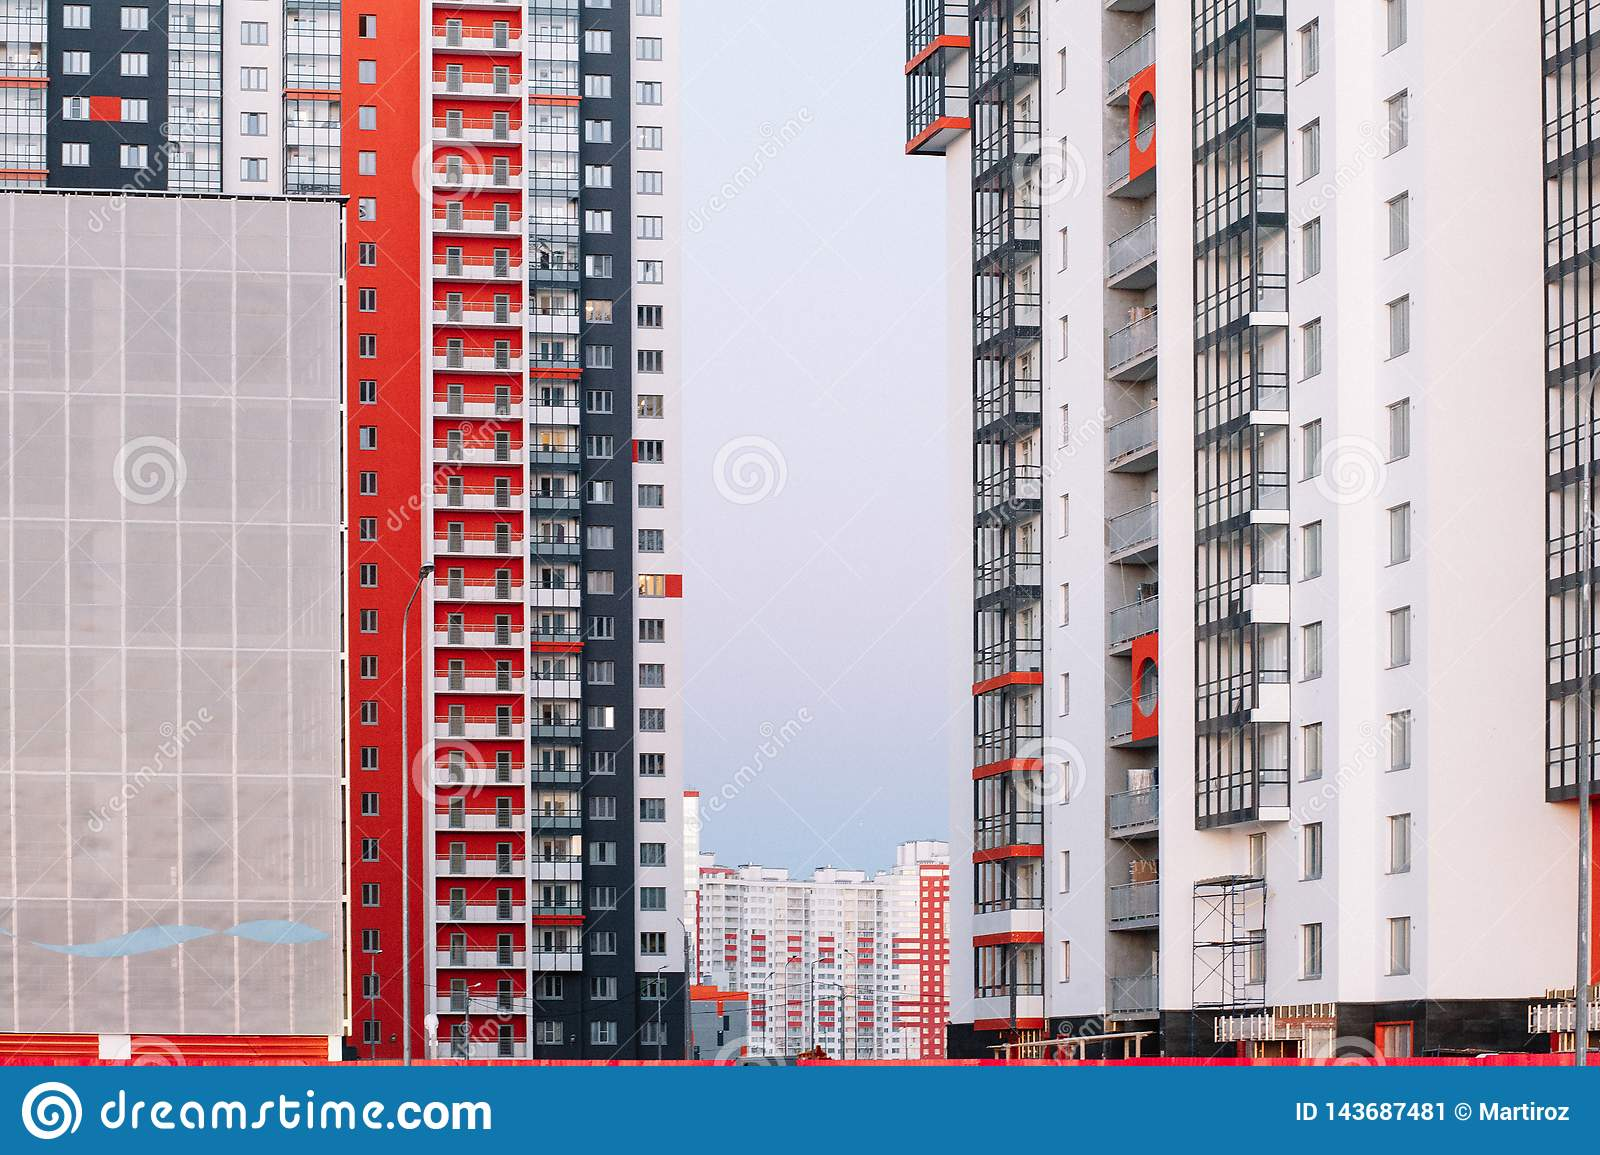 The facade of a high-rise building with red white and gray stripes. Multi-storey building against the blue sky. Background to